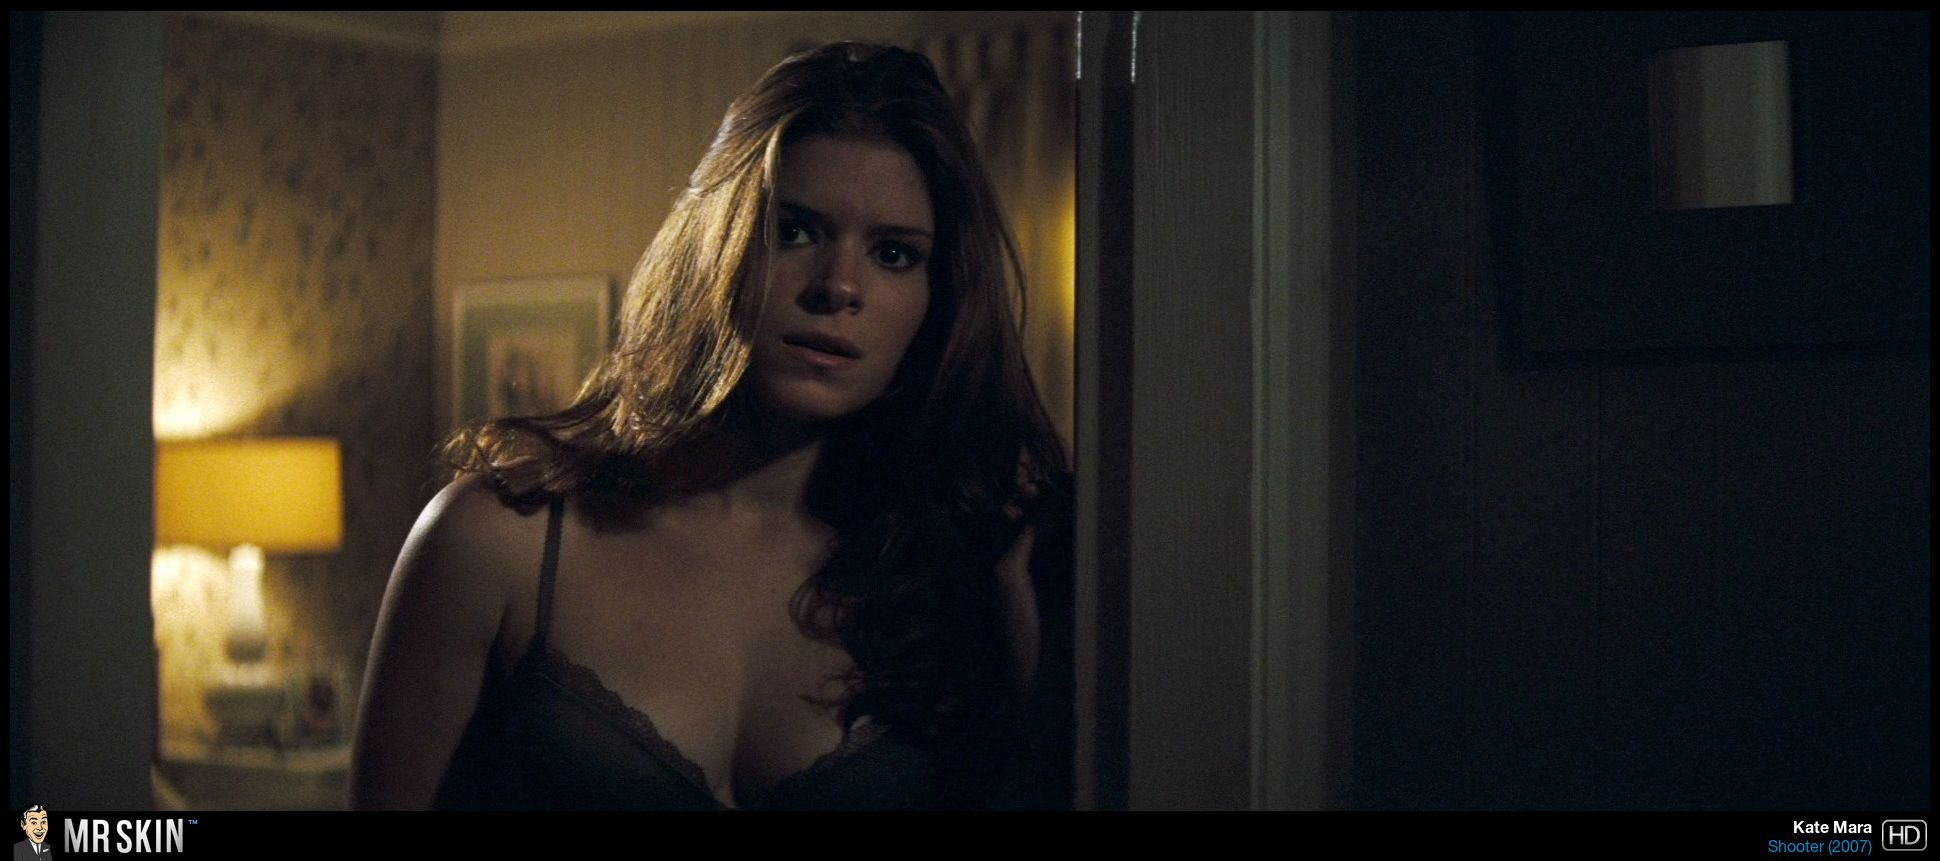 Kate mara nude scene in house of cards scandalplanetcom 9